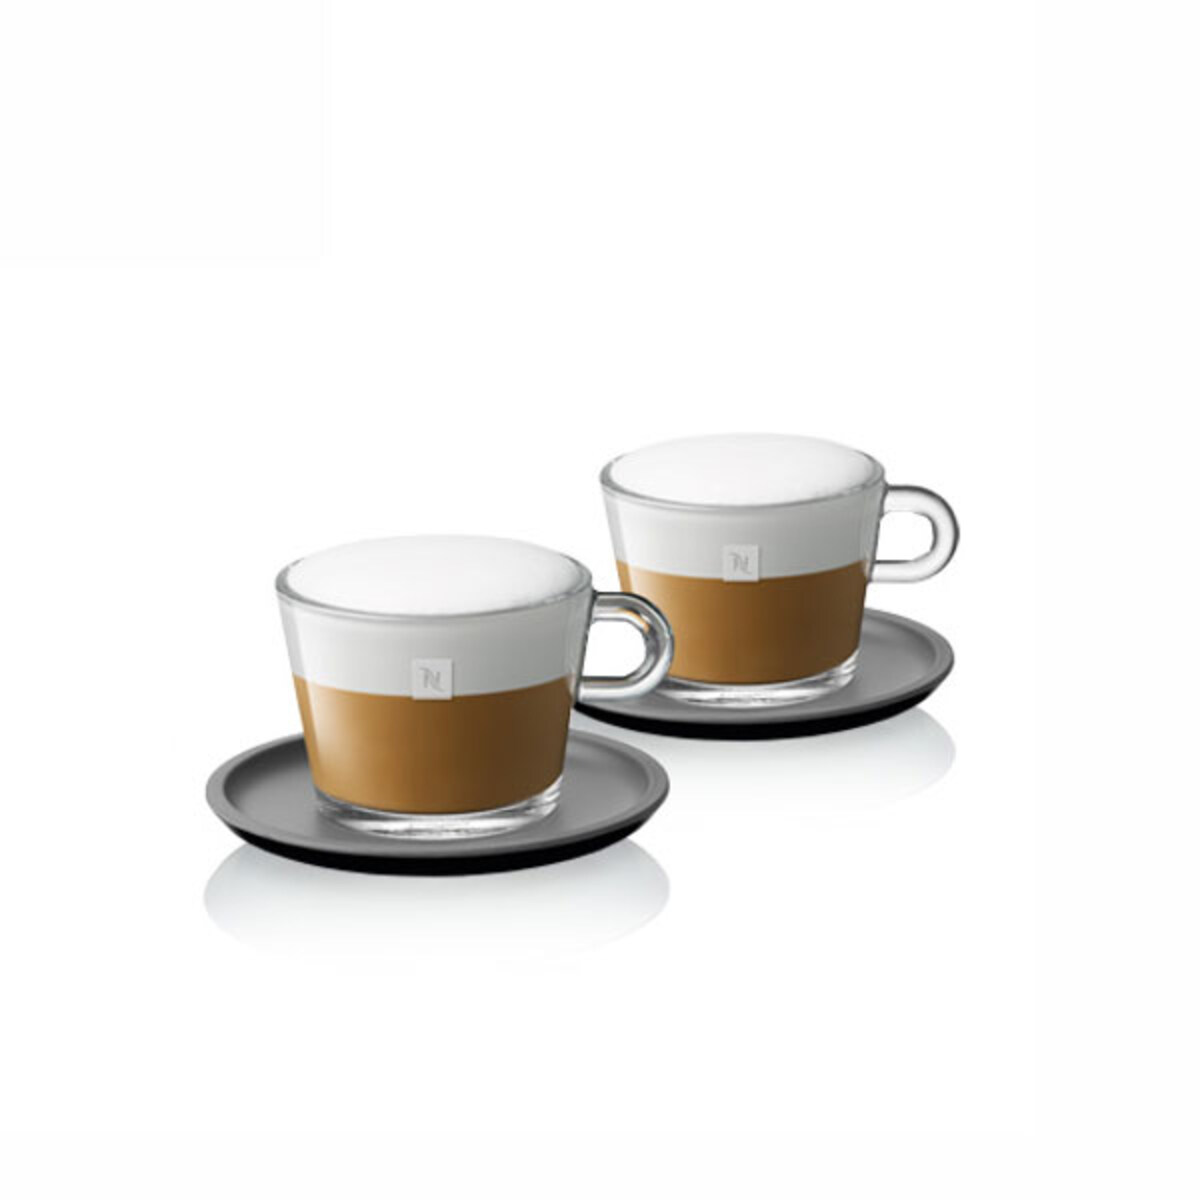 Nespresso View Cappuccino cup & saucer